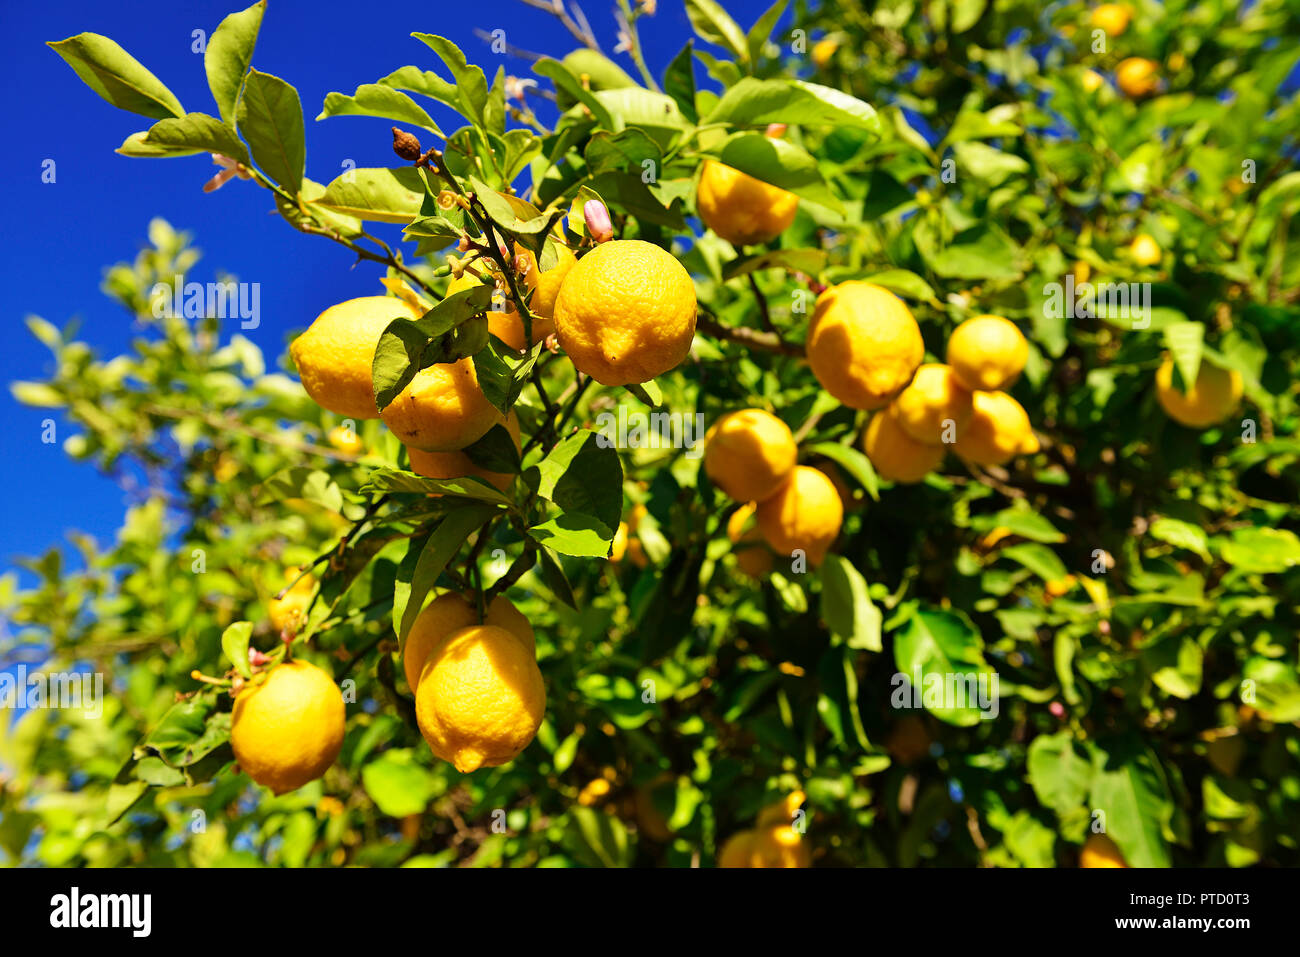 Lemon tree (Citrus × limon) with ripe lemons, near Mirtos, Crete, Greece - Stock Image